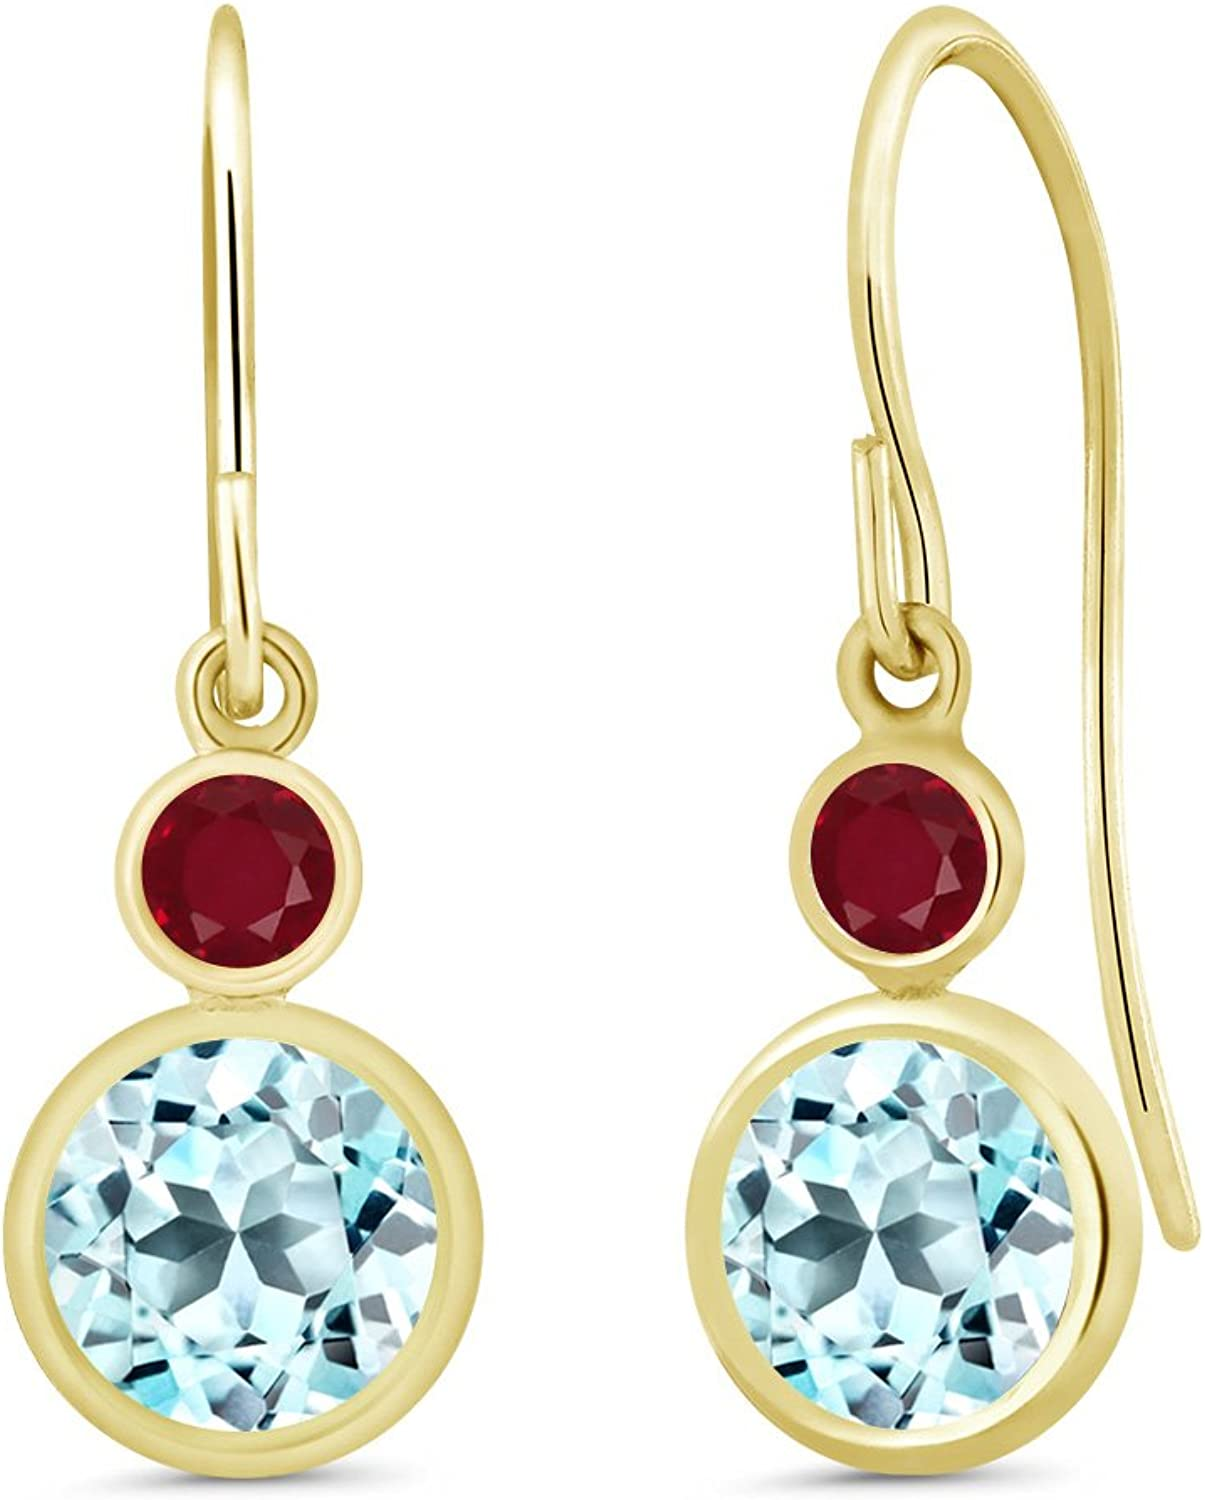 2.67 Ct Round Sky bluee Topaz Red Ruby 14K Yellow gold Earrings